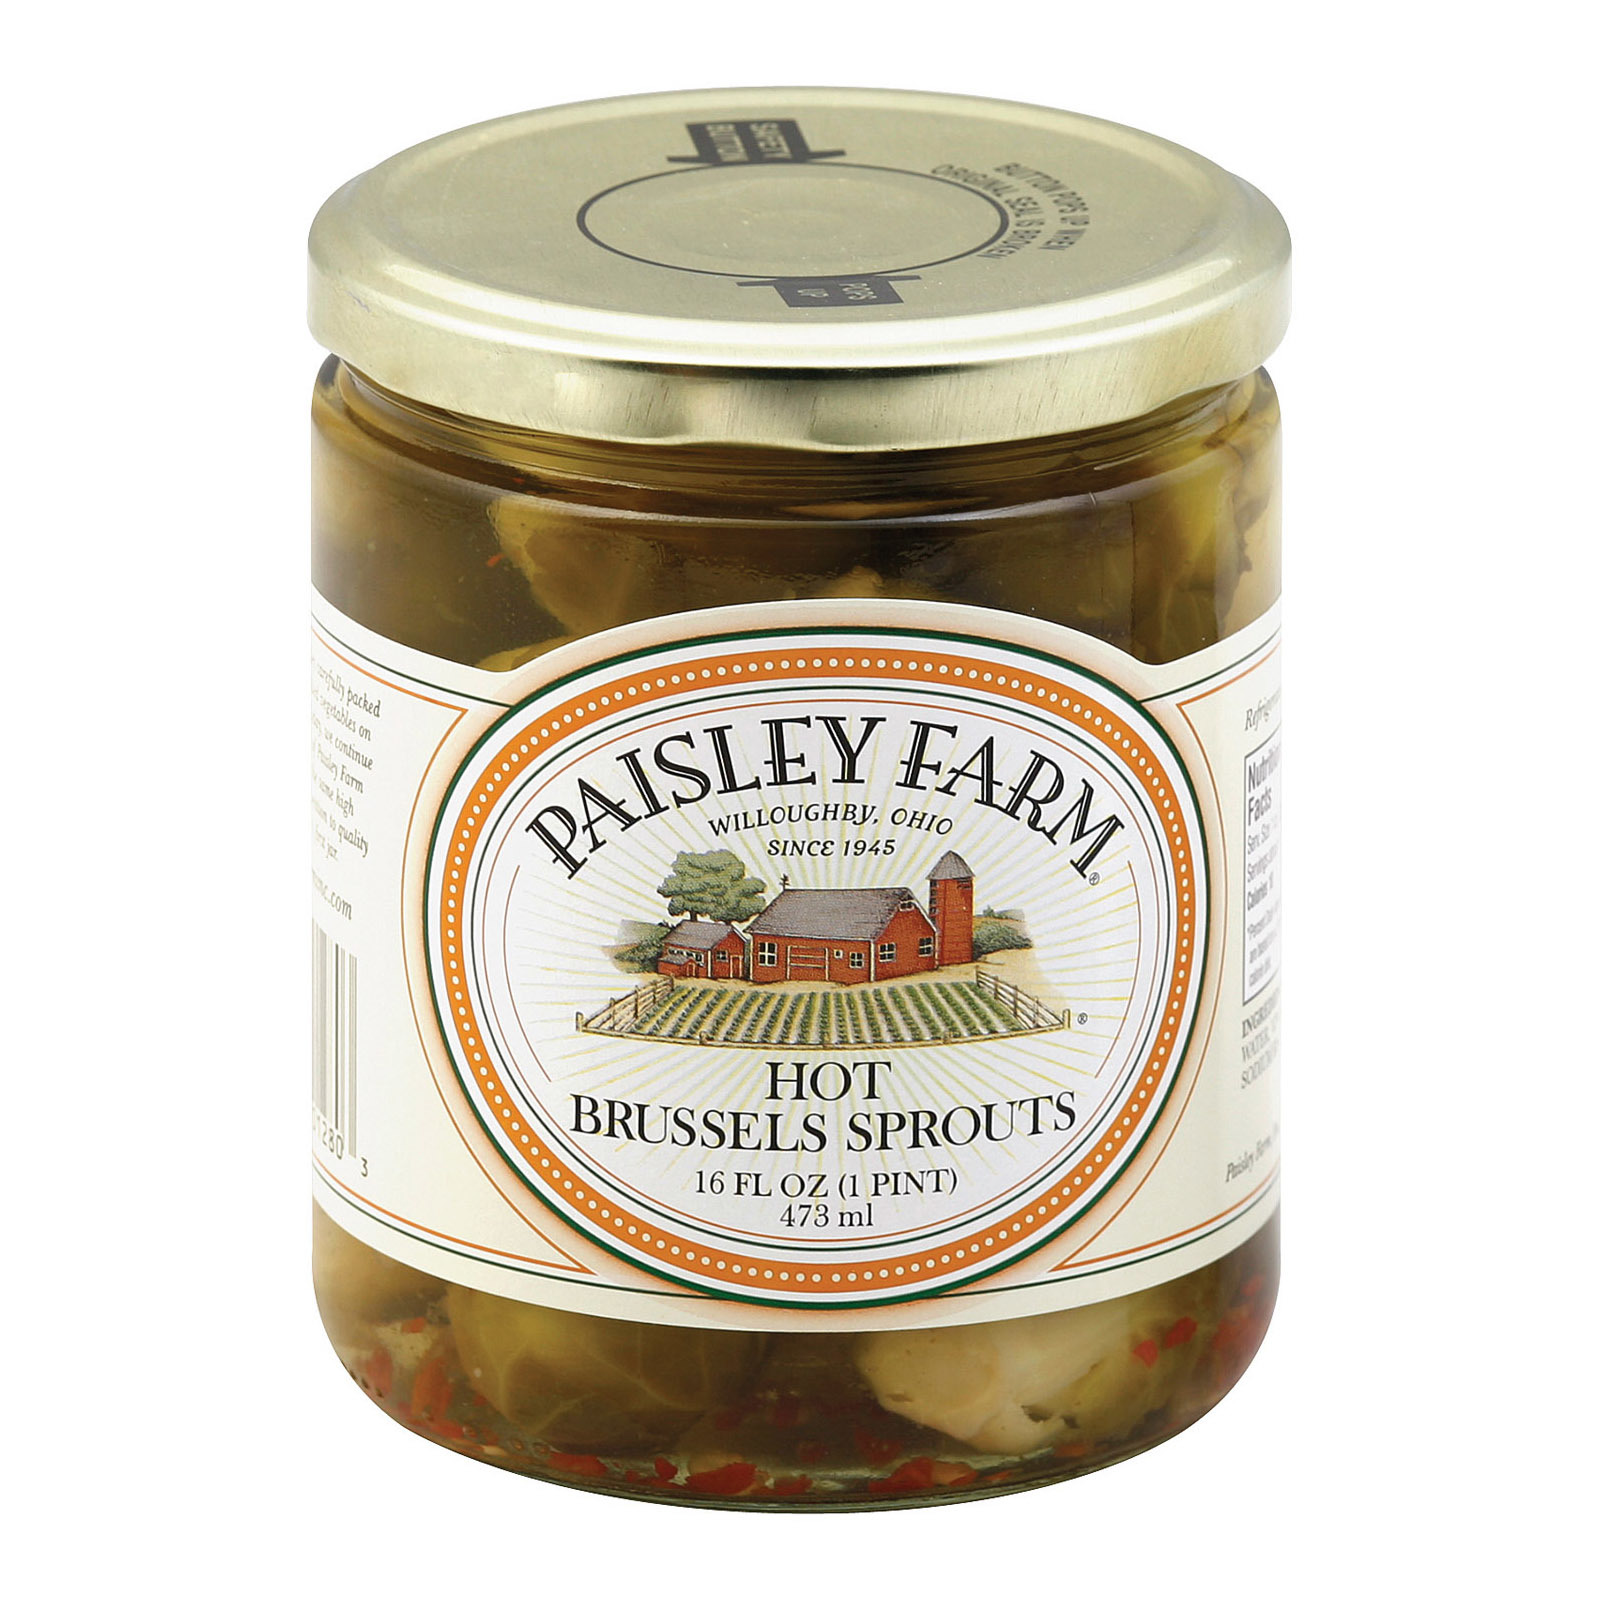 Paisley Farm Brussel Sprouts - Hot - Case of 12 - 16 oz